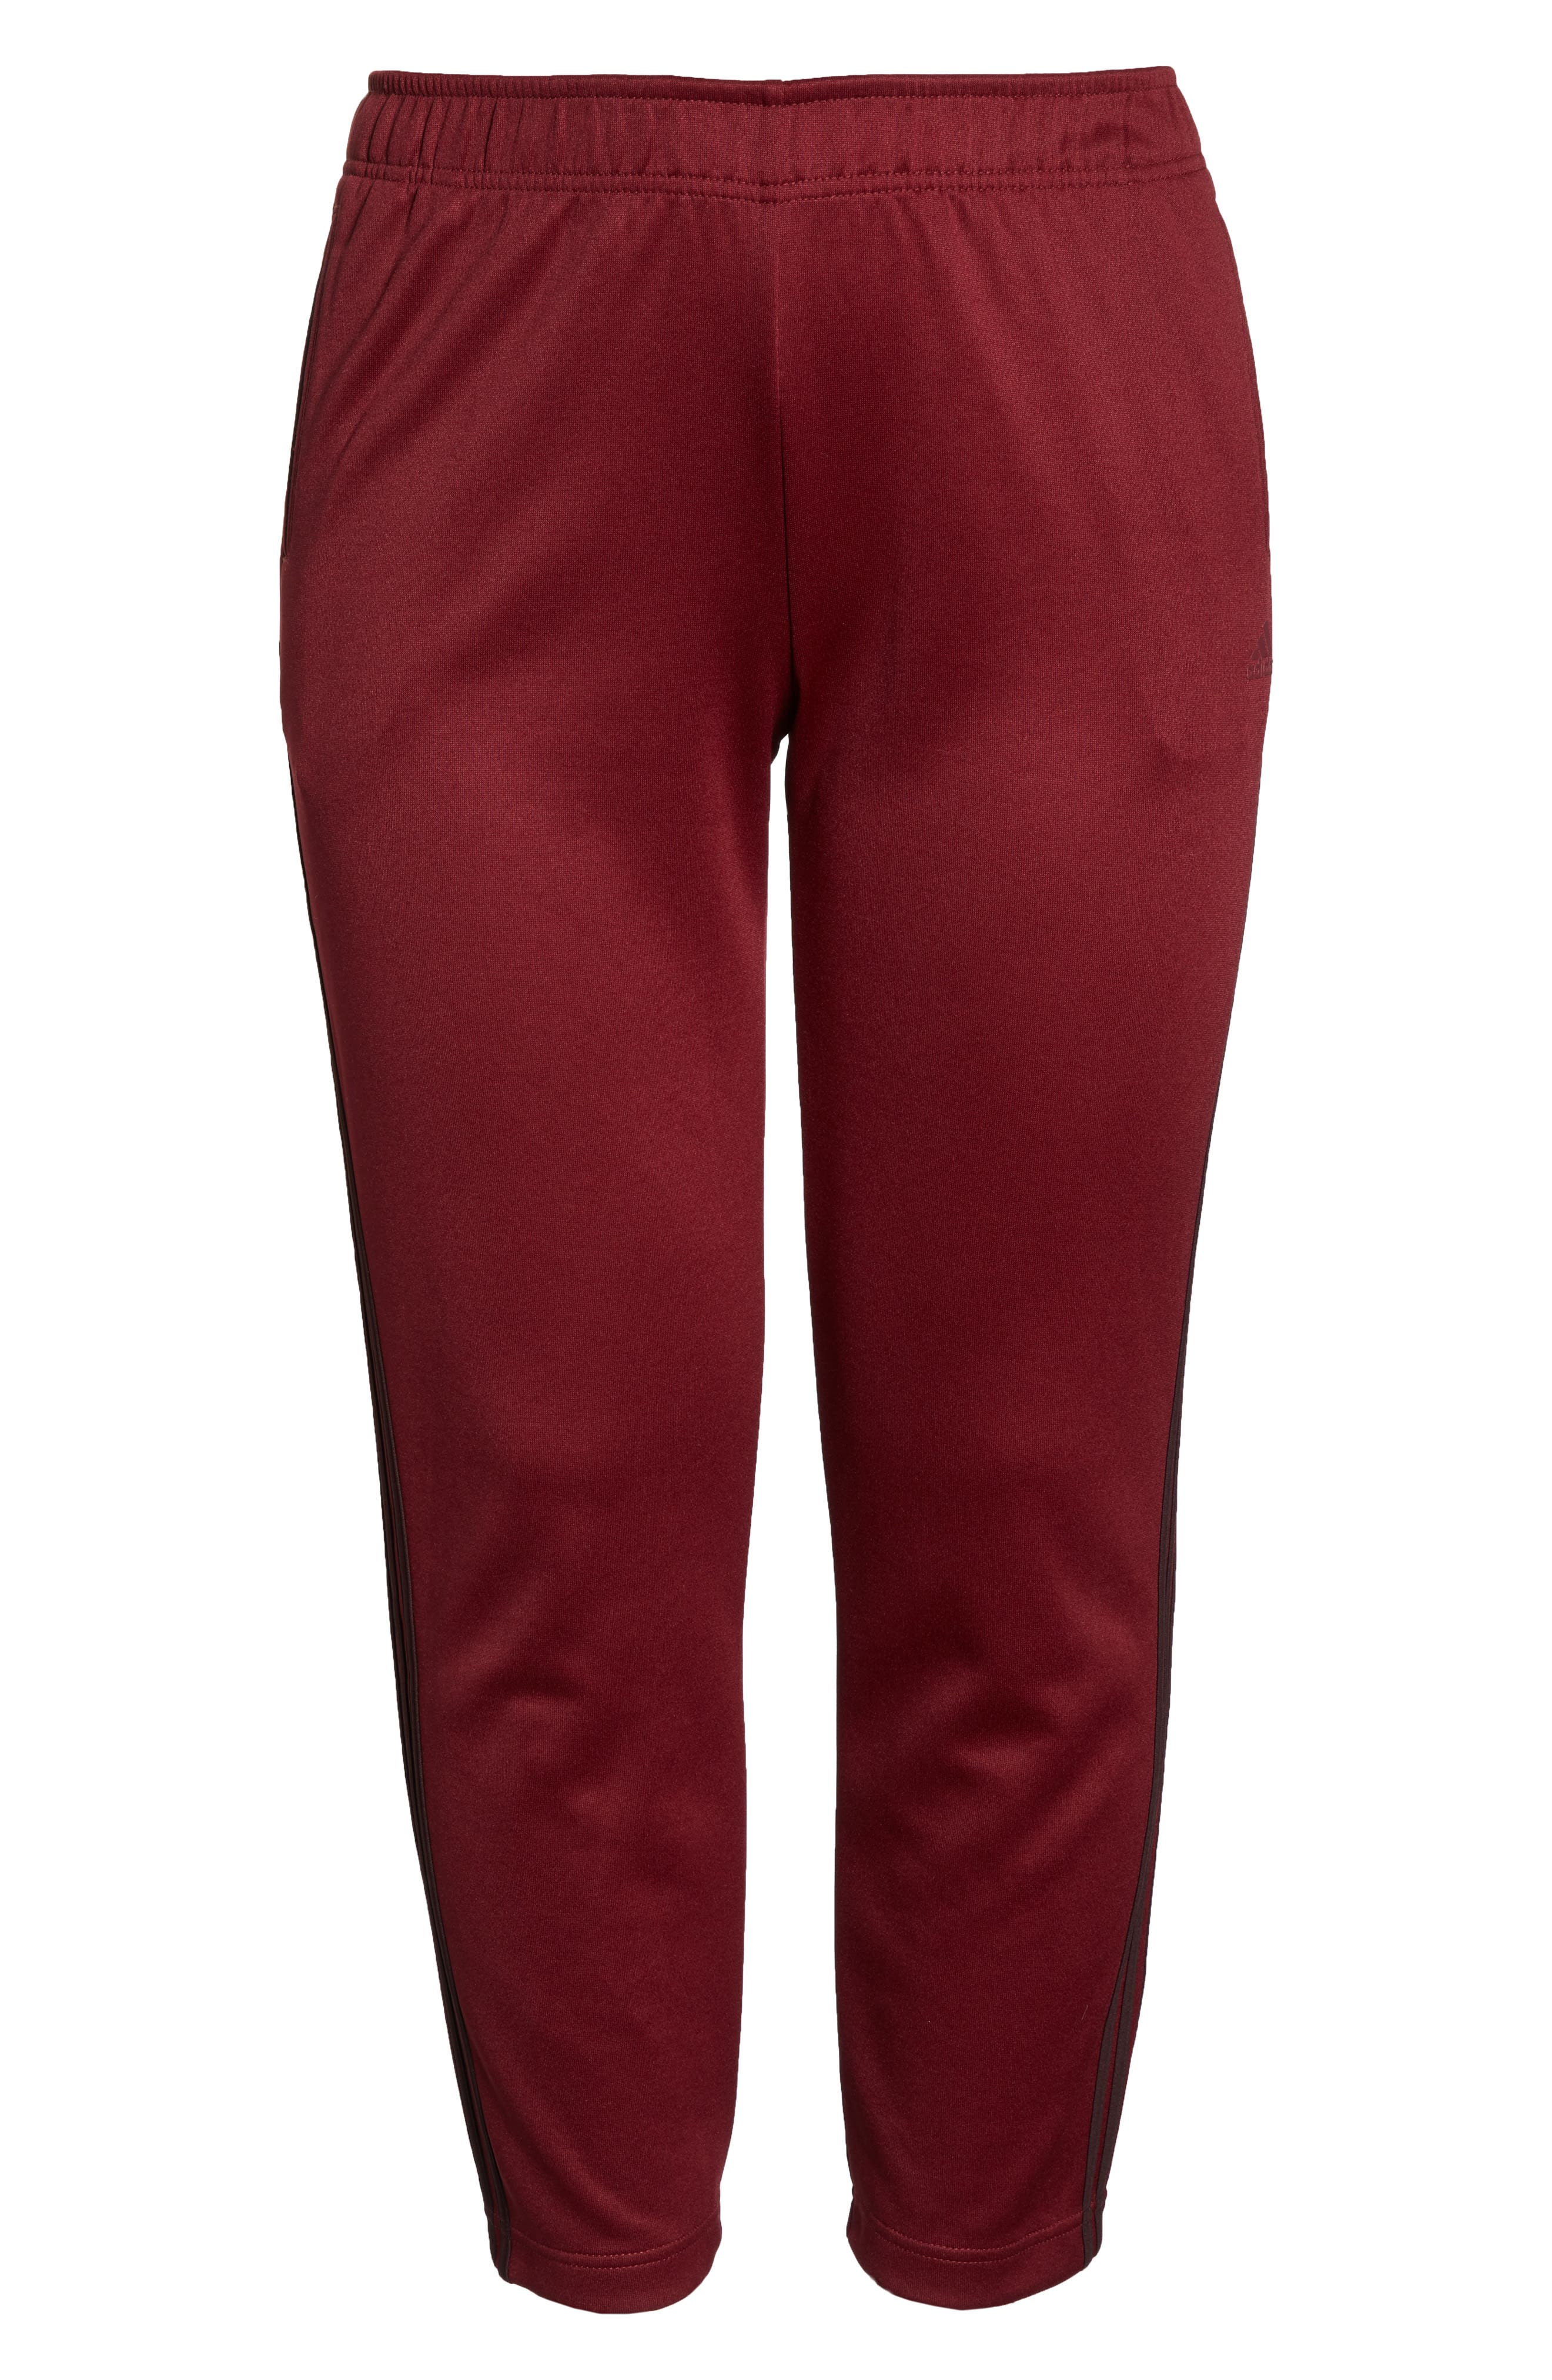 Tricot Snap Pants,                             Alternate thumbnail 12, color,                             NOBLE MAROON/ NIGHT RED